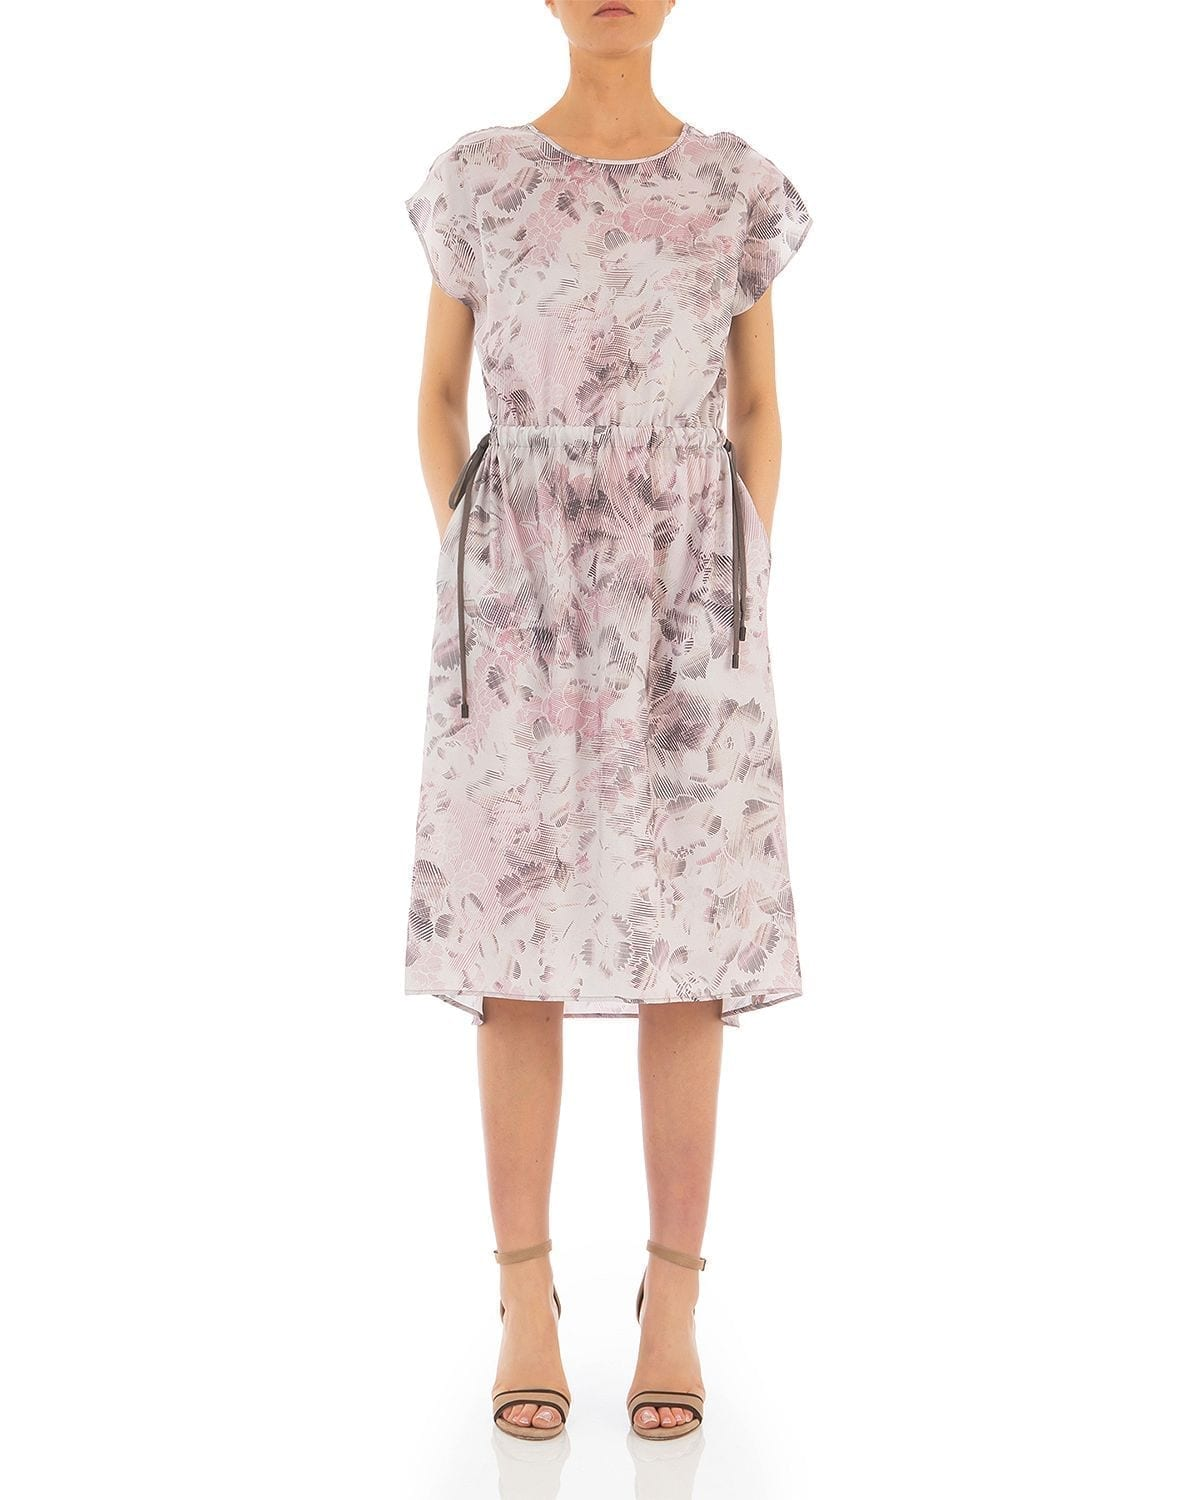 PESERICO Floral Print Dress